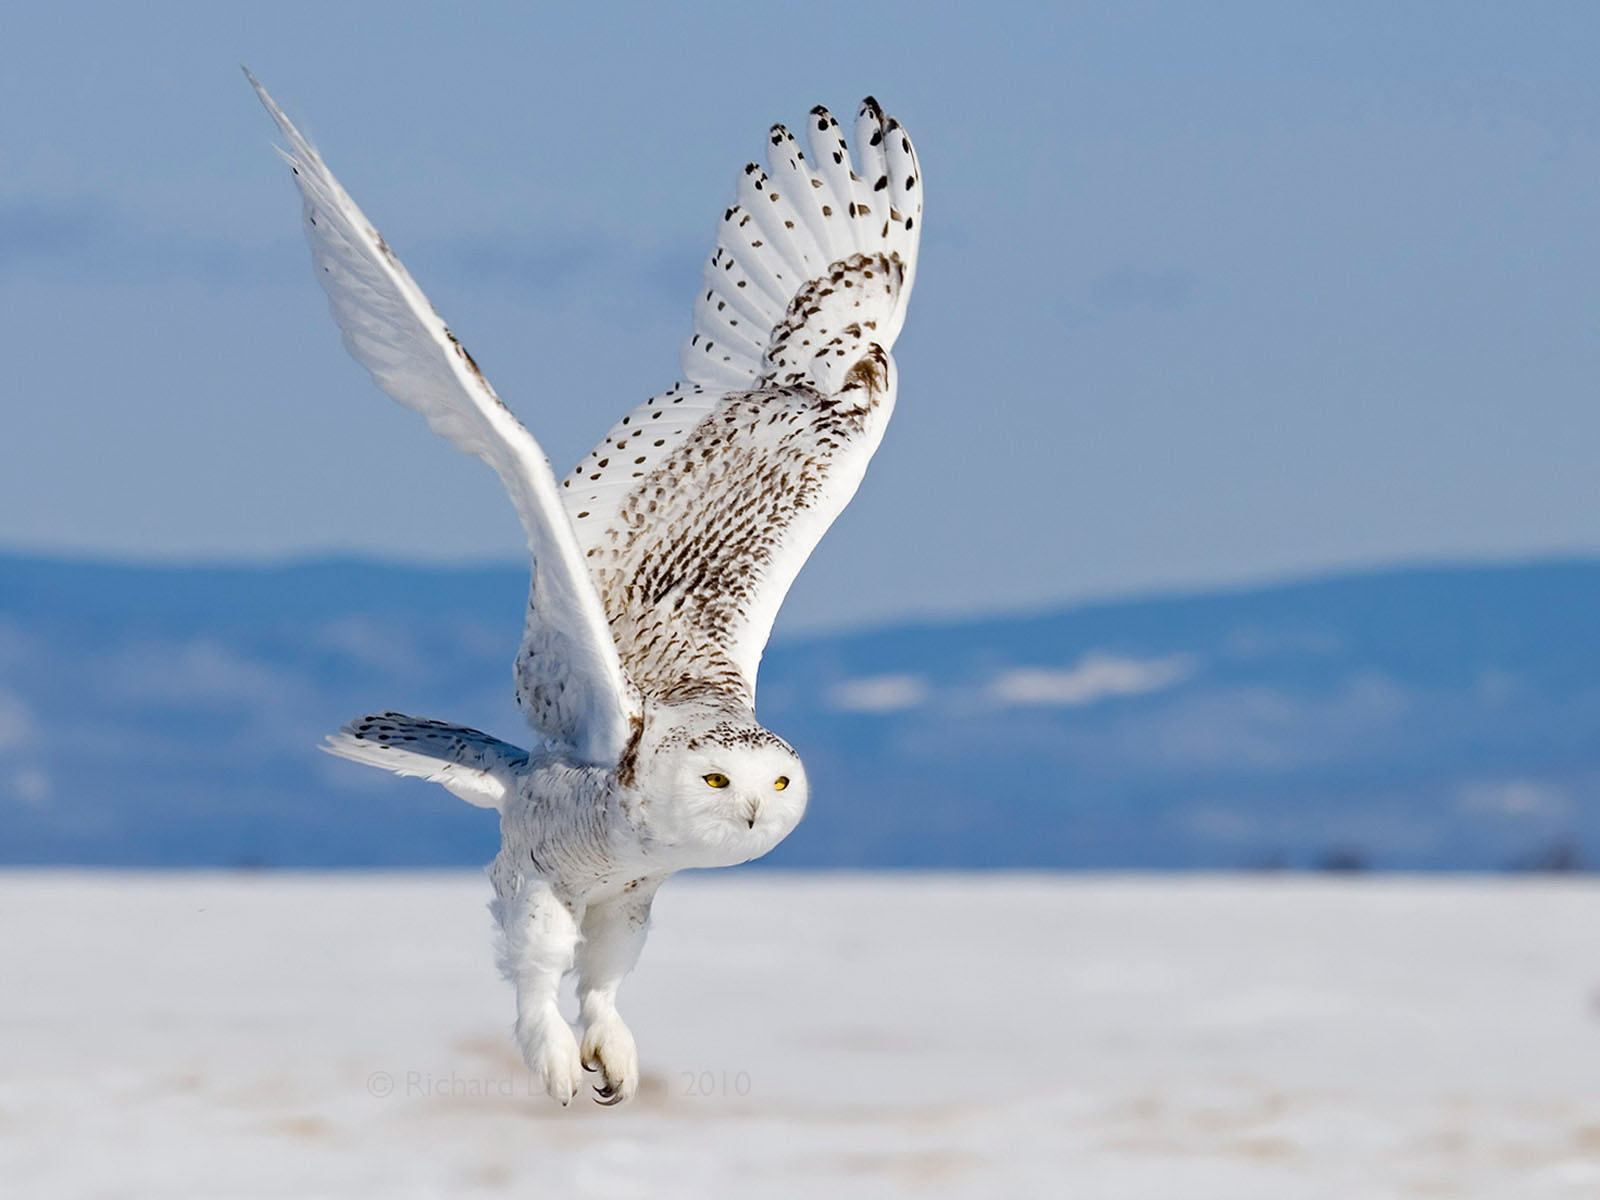 Photograph Snowy owl in flight by Richard Dumoulin on 500px